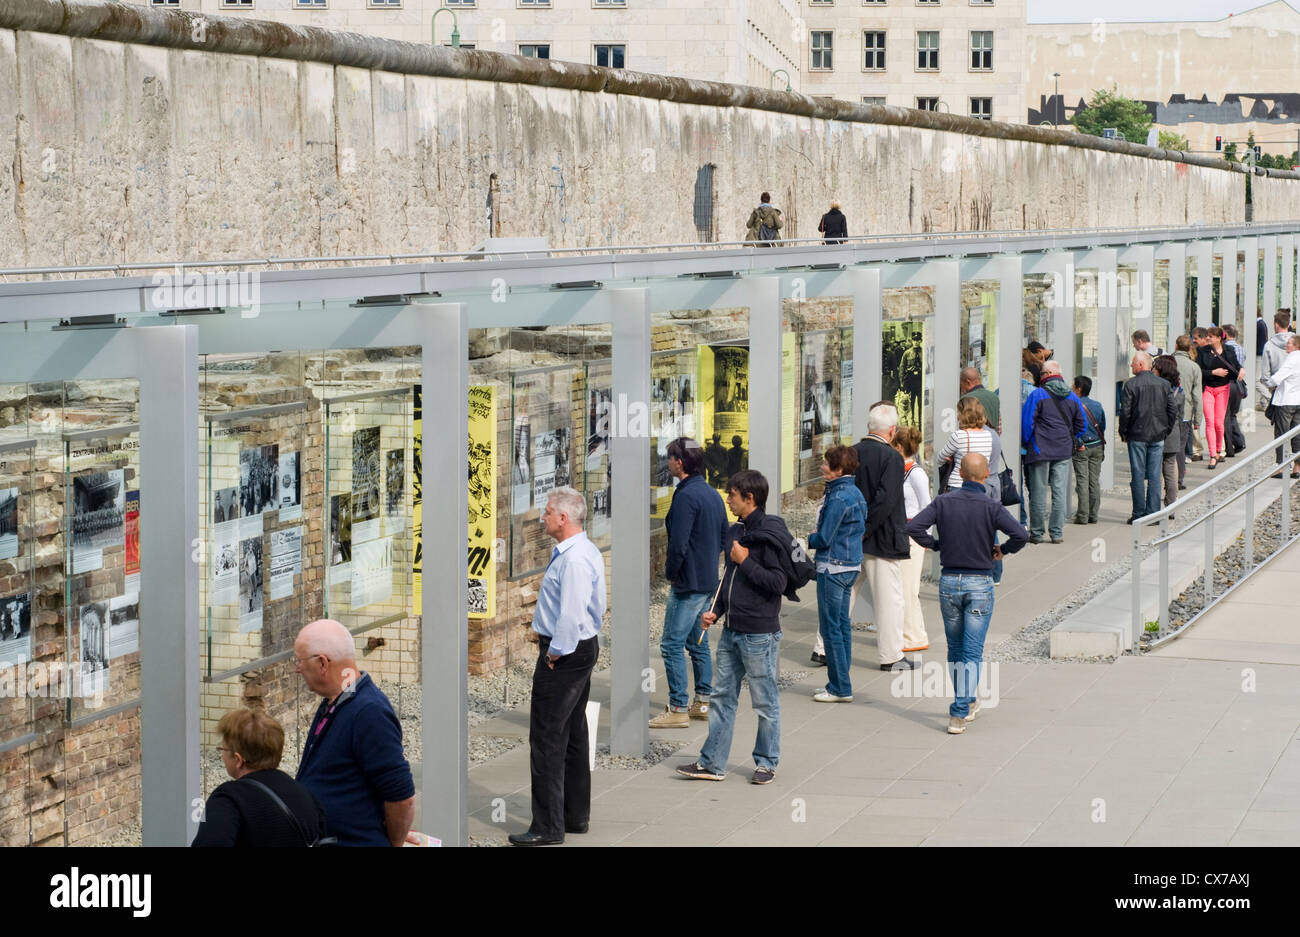 Tourists at the Topography of Terror outdoor museum in Berlin, Germany, which includes a preserved section of the Stock Photo